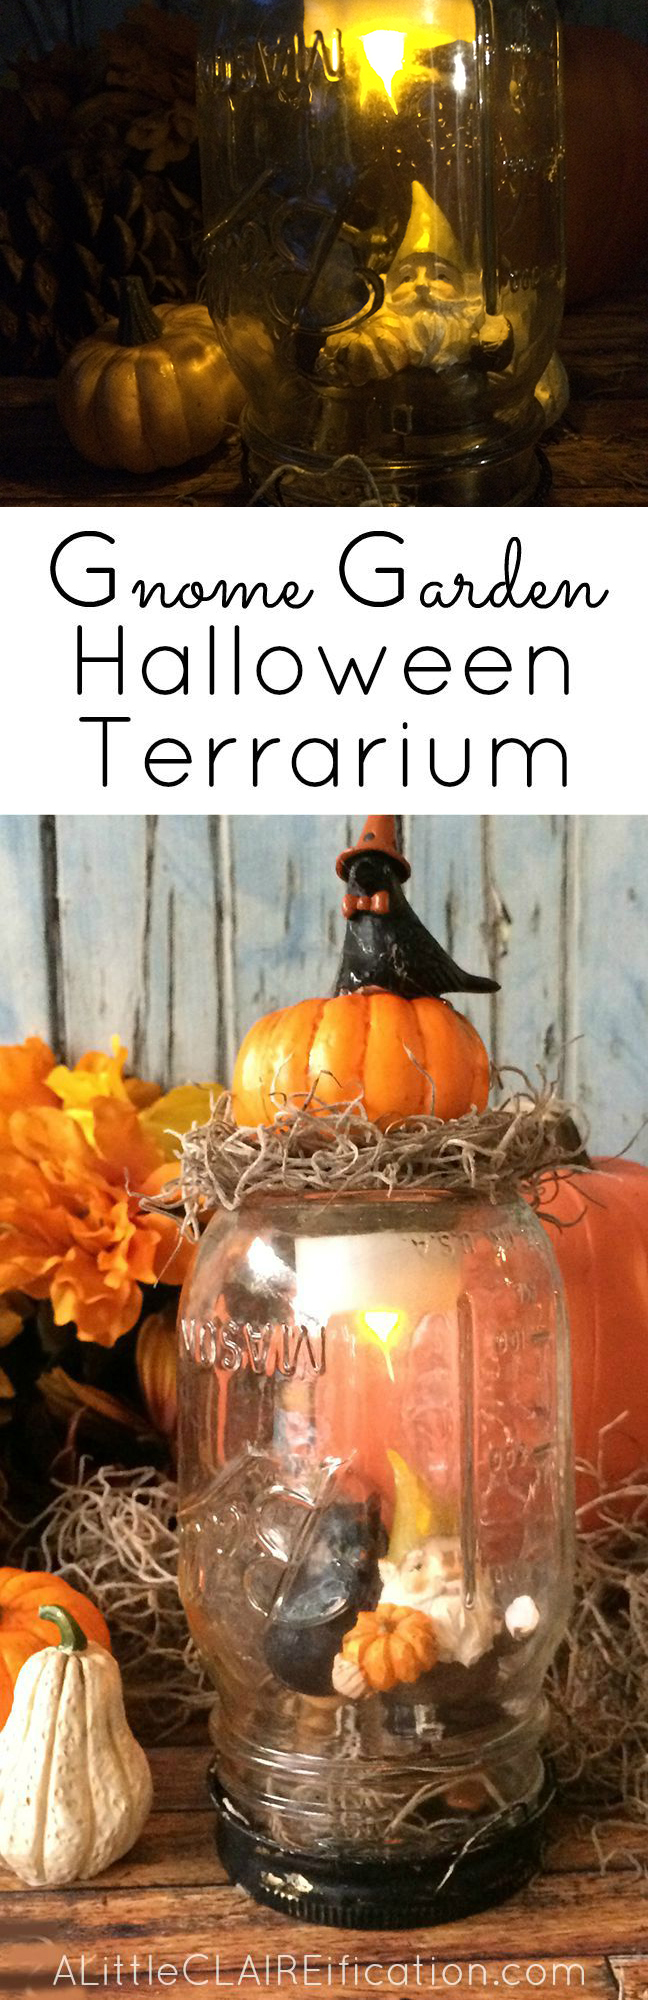 Gnome Garden Halloween Terrarium - An easy Halloween craft and the kids can help too!